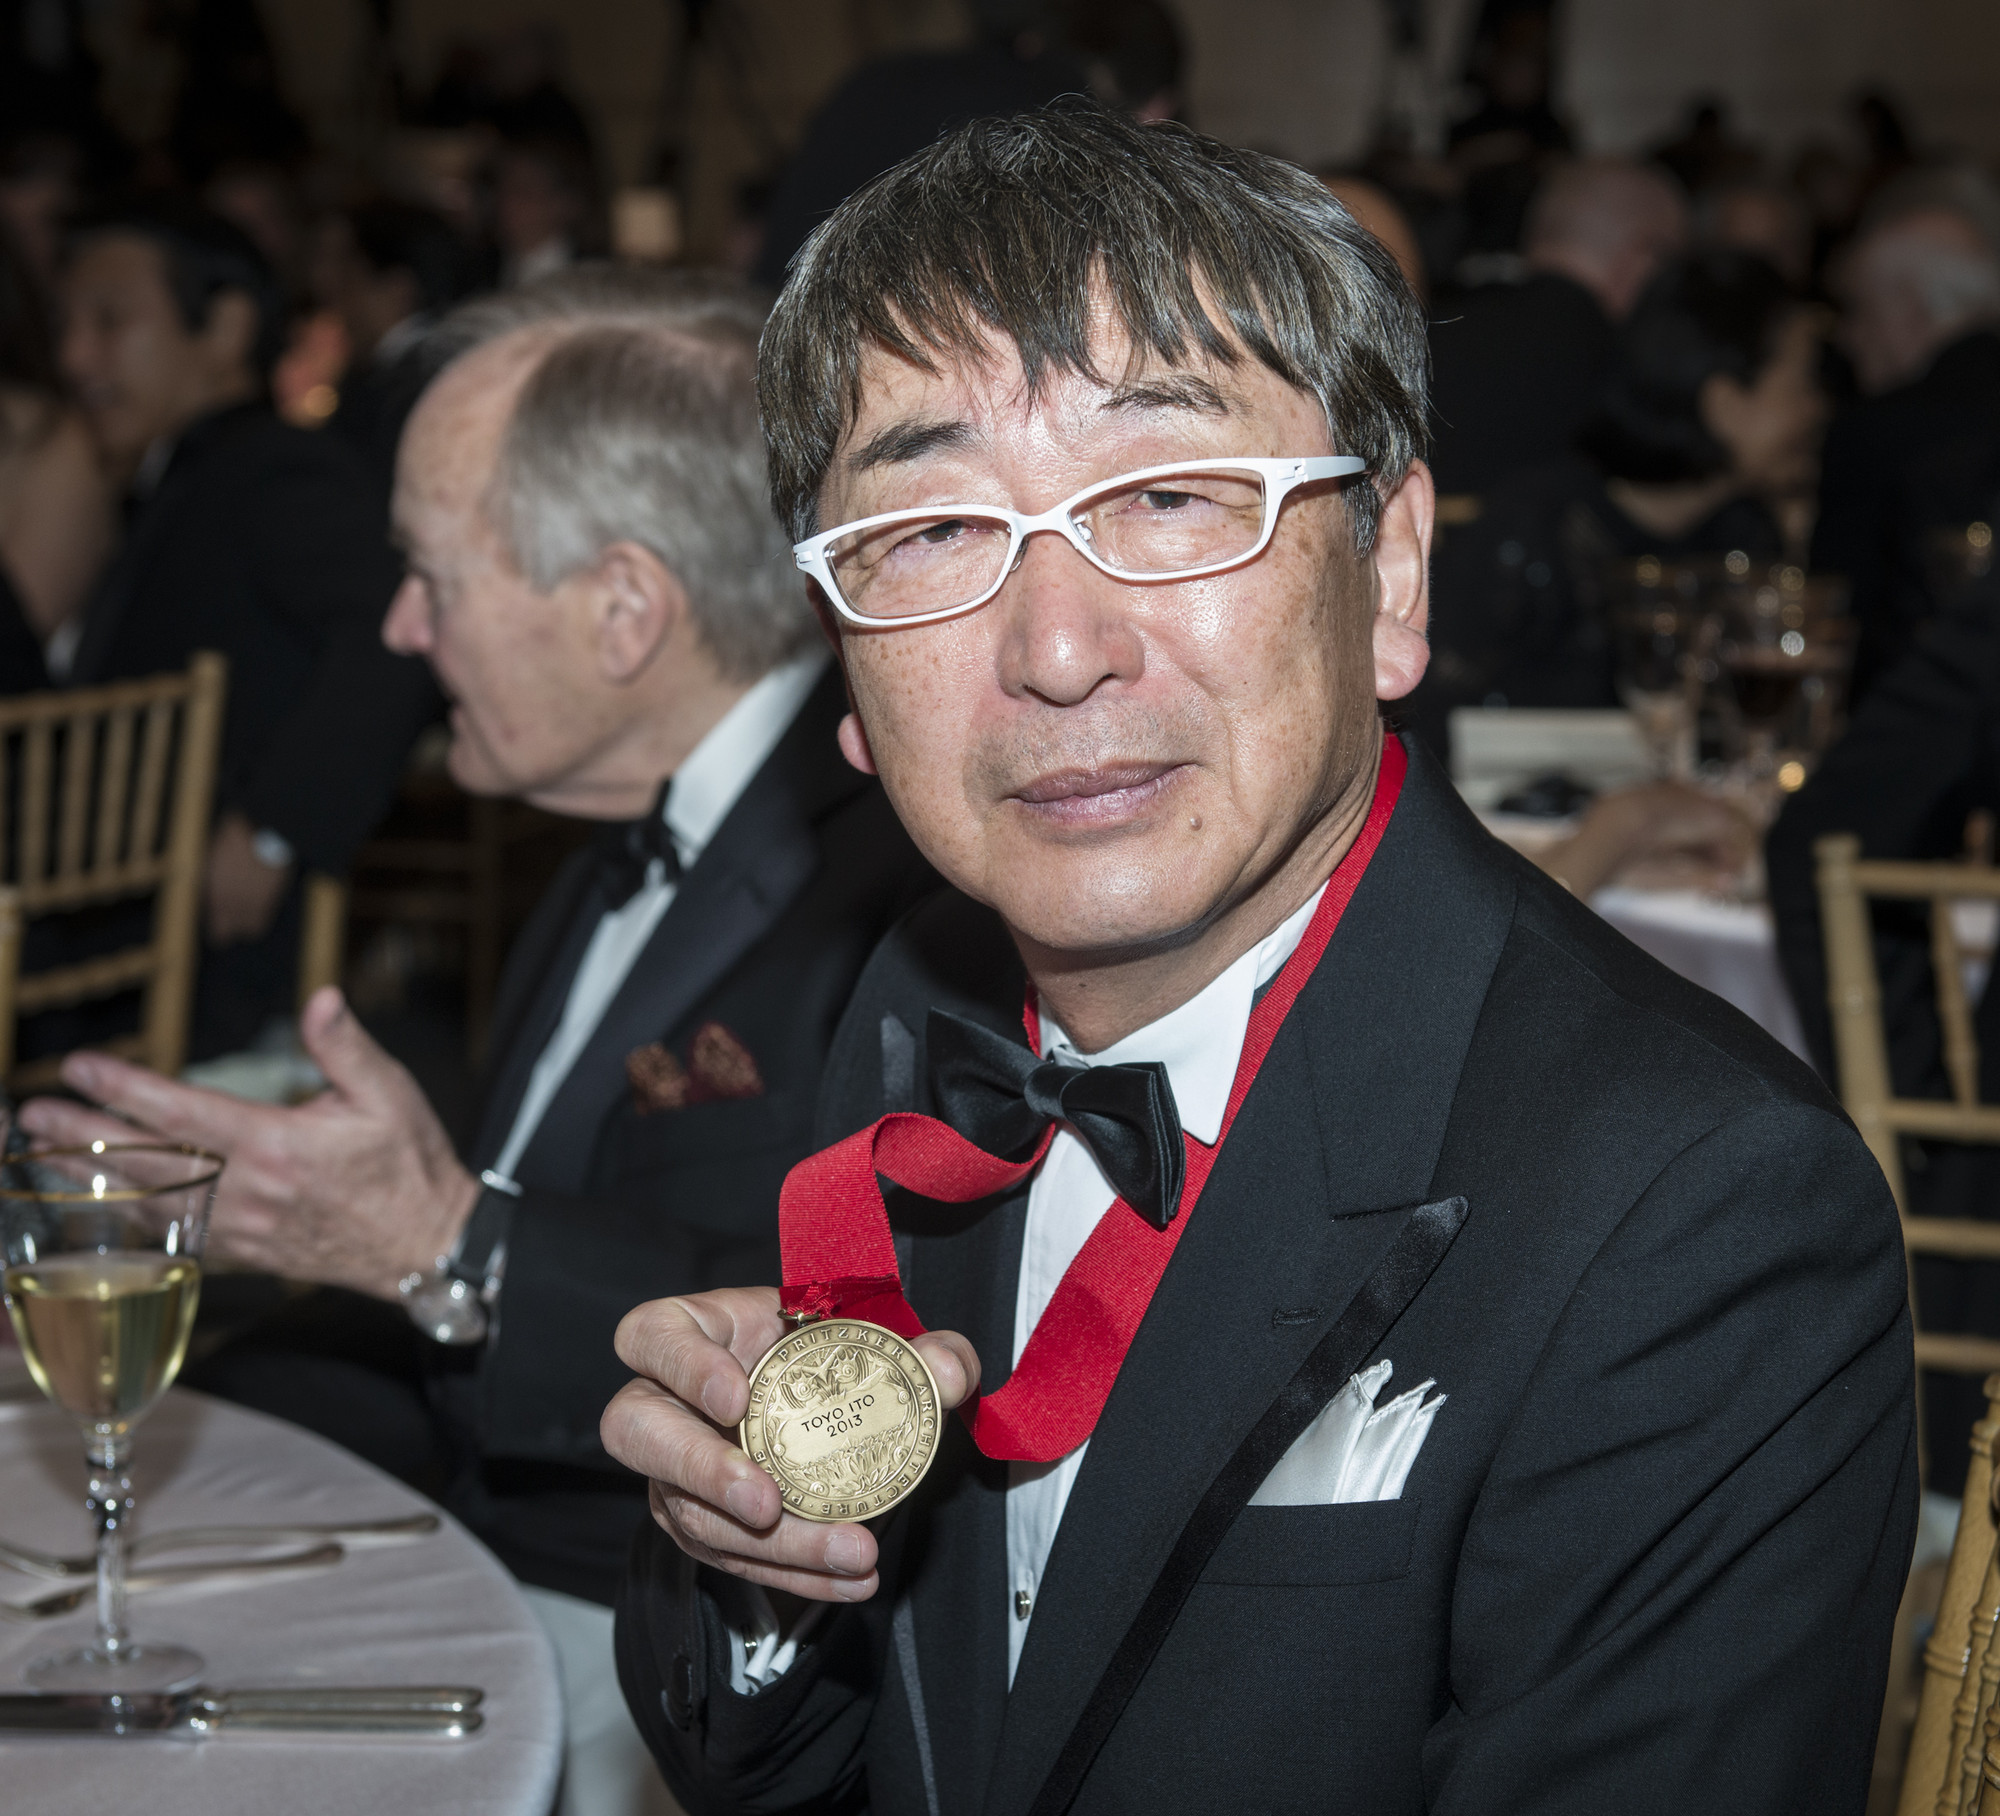 Toyo Ito with the Pritzker Medal